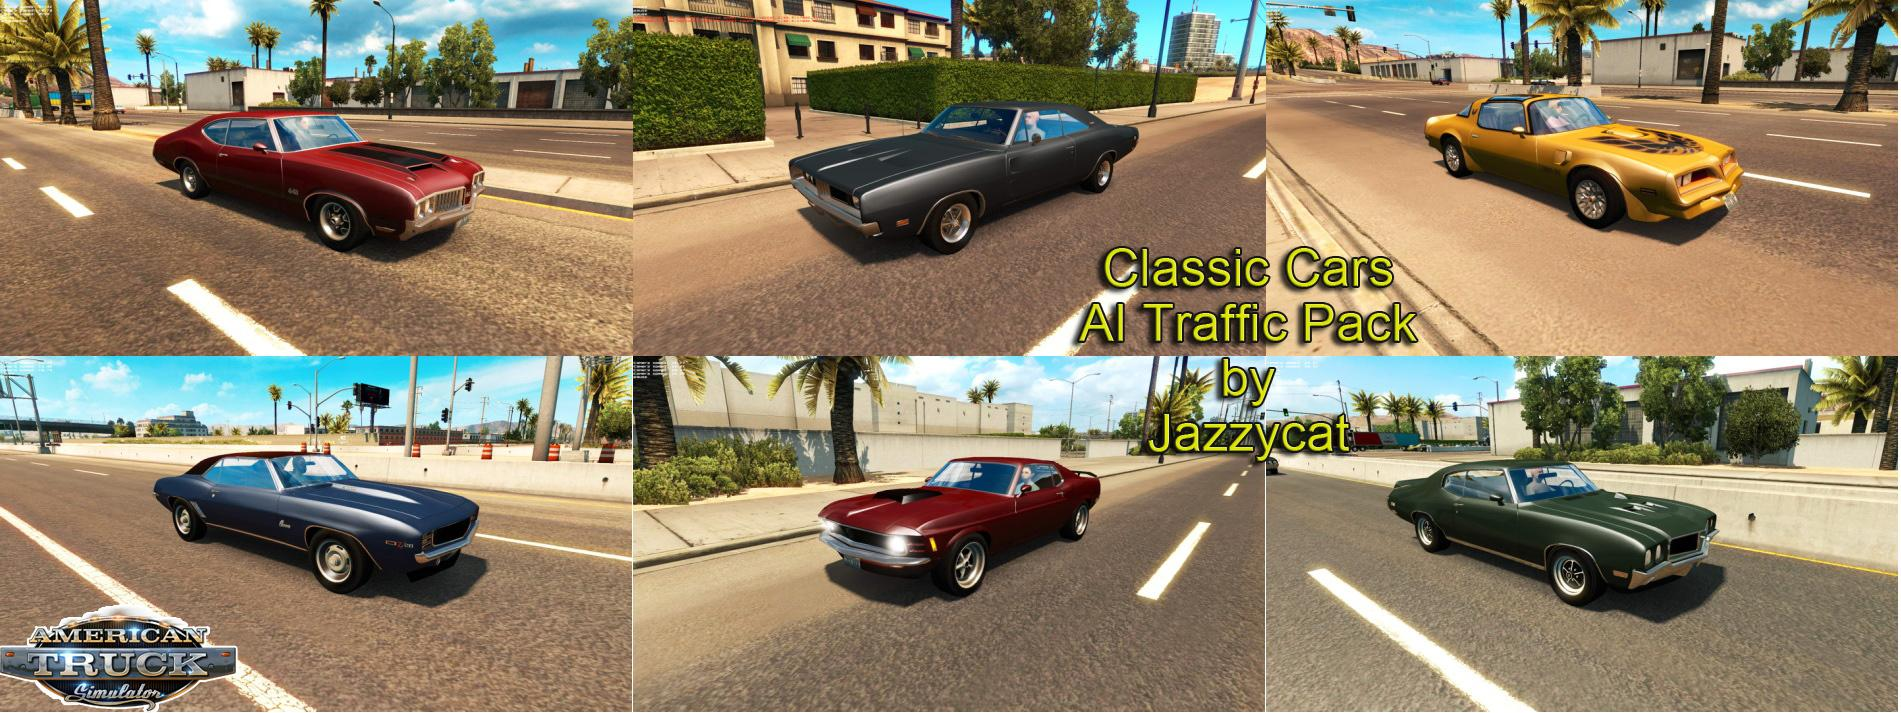 Classic Cars AI Traffic Pack by Jazzycat v1 1 • ATS mods